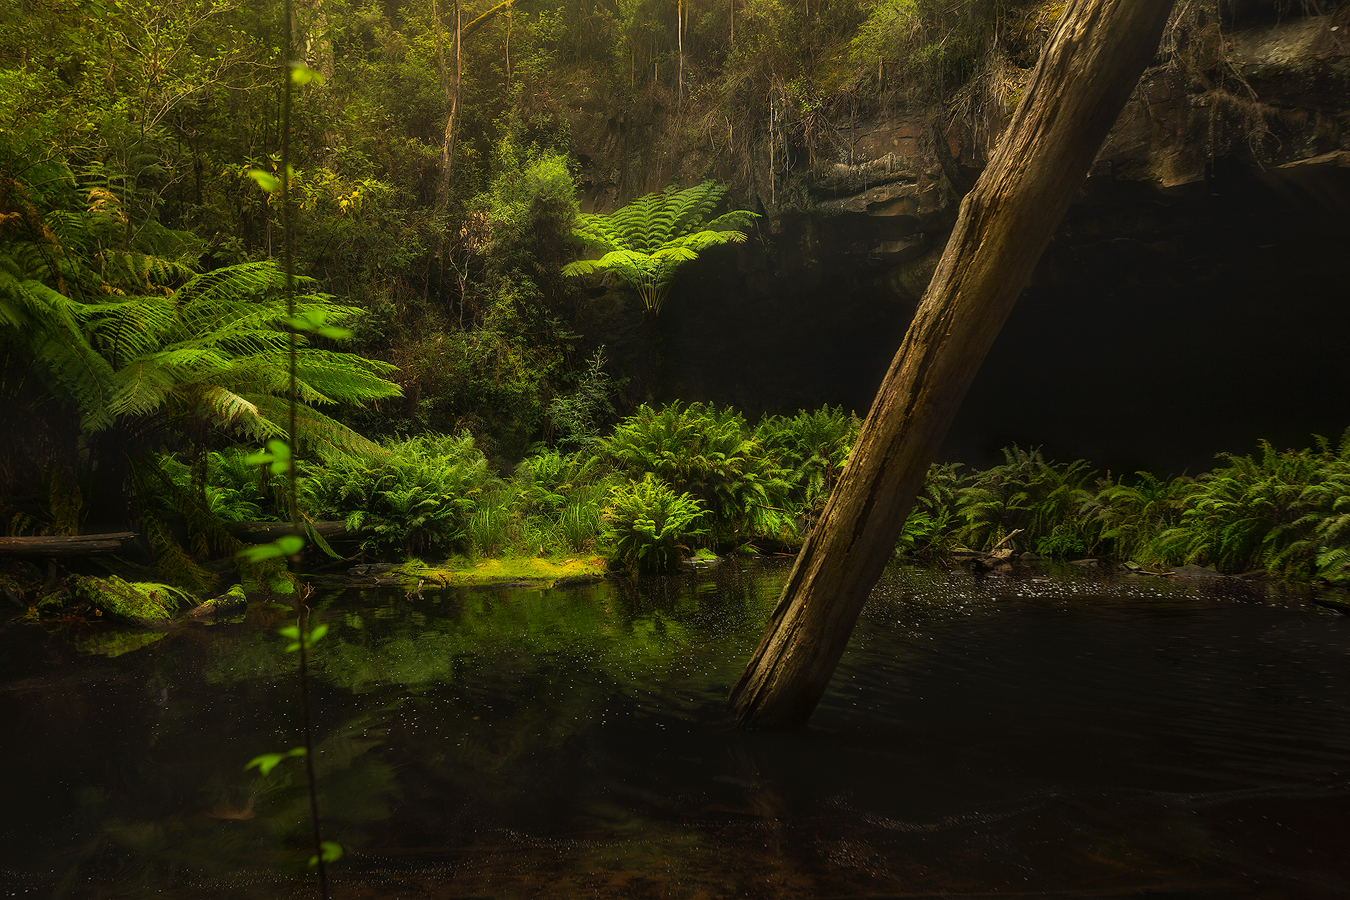 Mystery of the Forest - Lower Kalimna Falls, Waterfall Photography in Lorne, Great Ocean Road | We Are Raw Photography